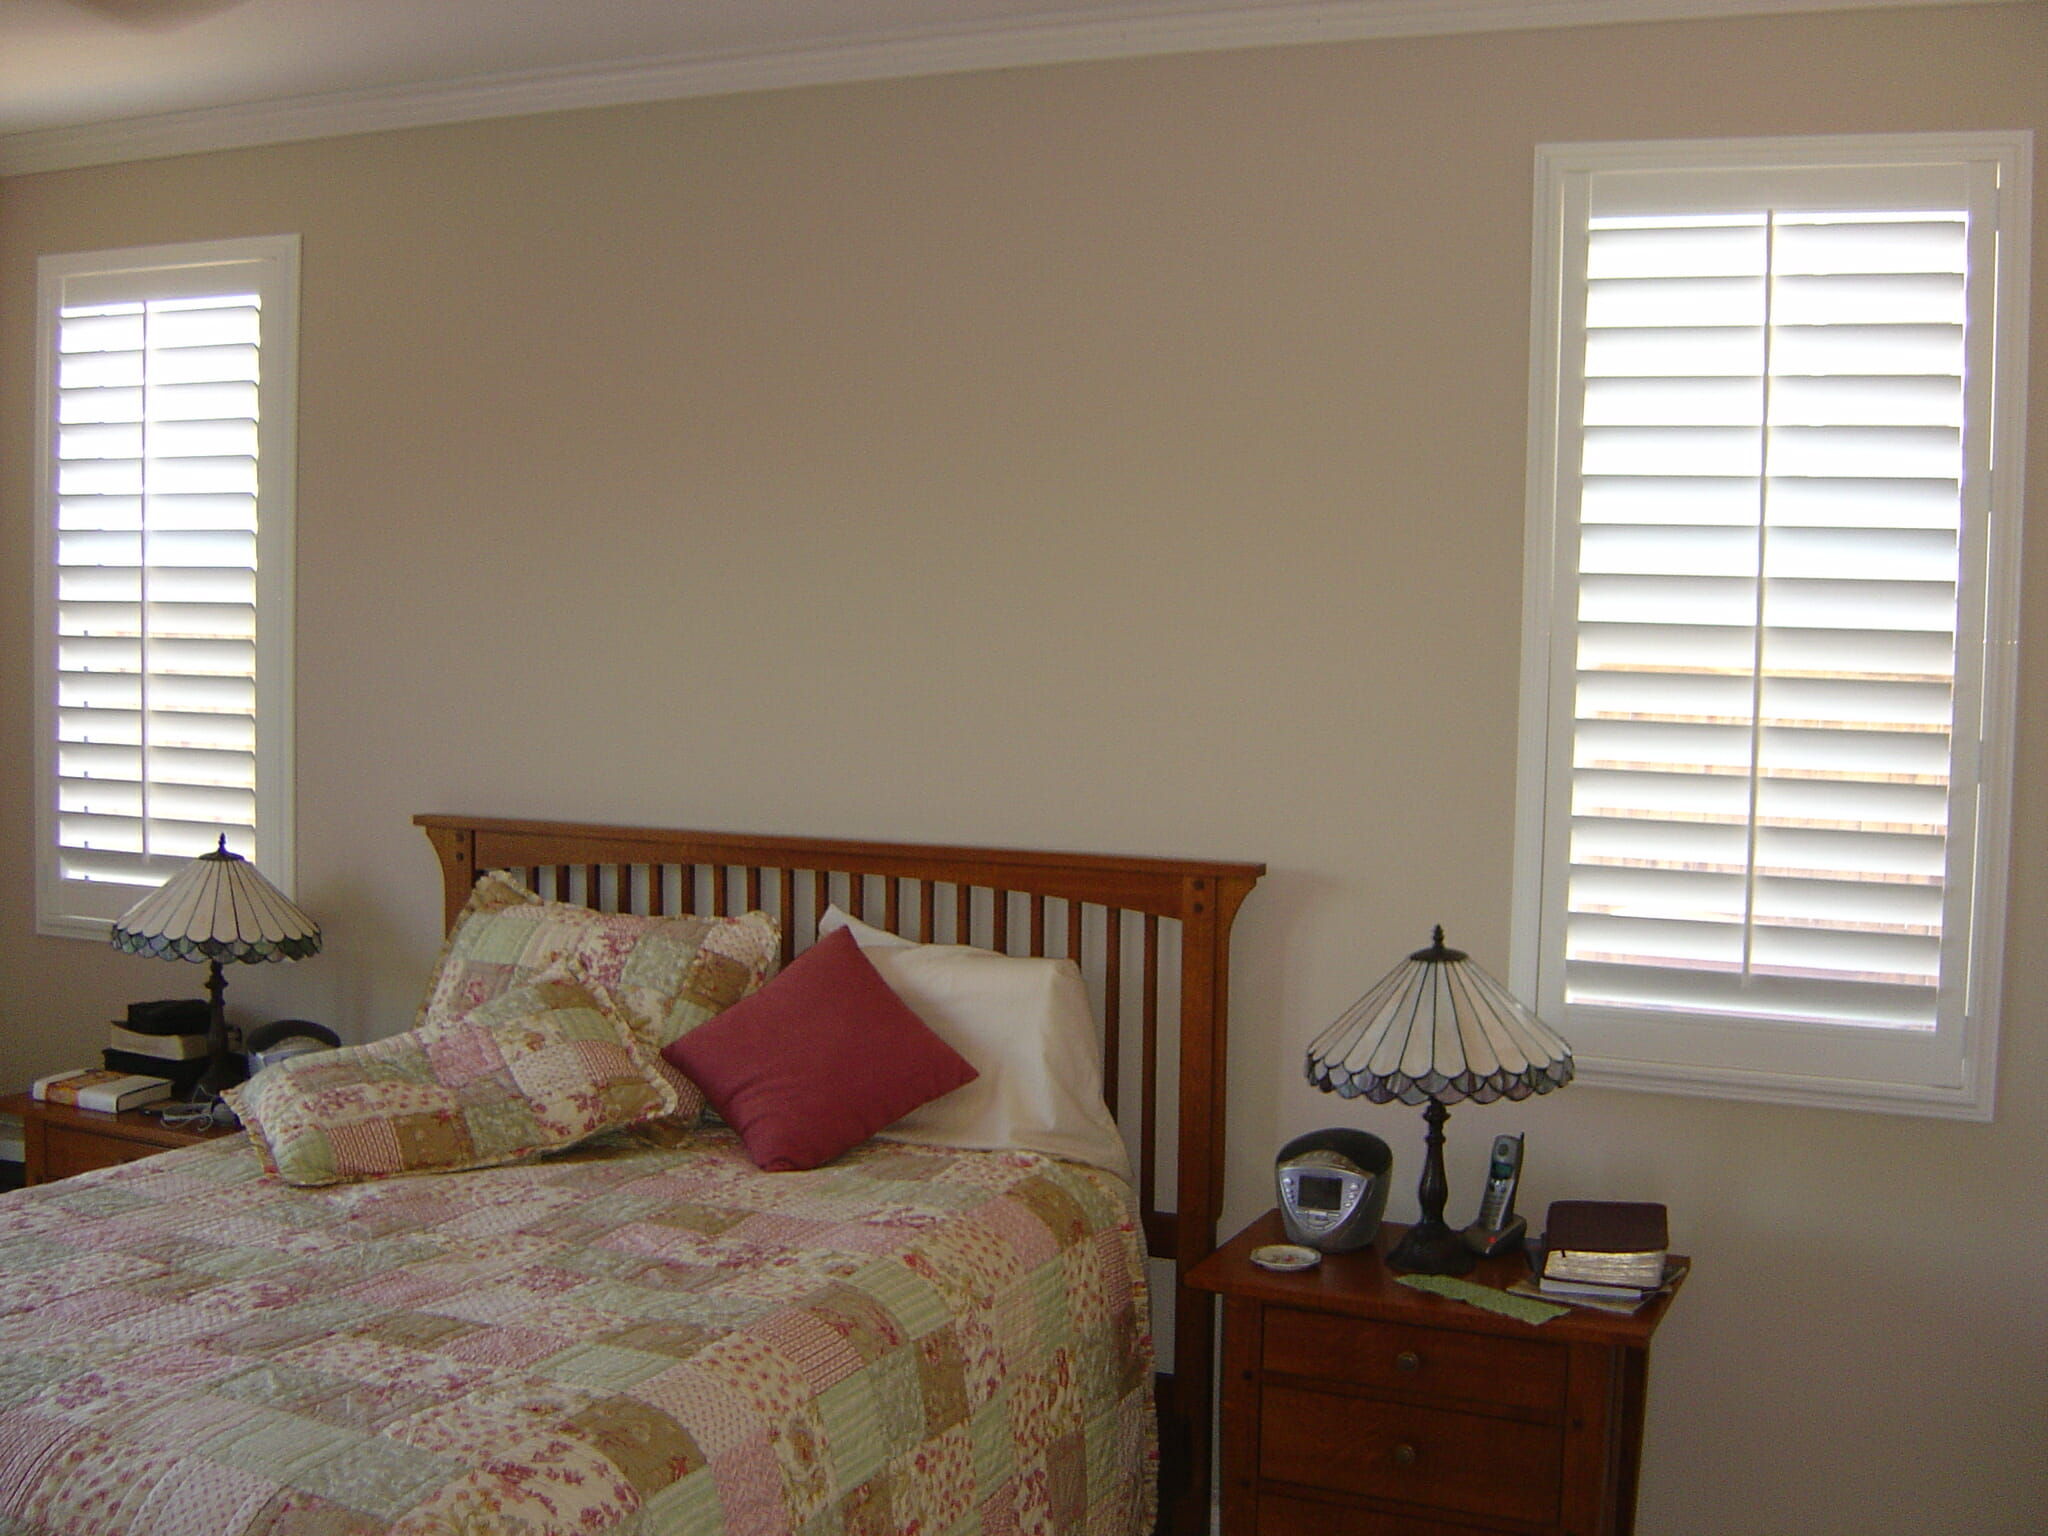 Window treatment ideas for the bedroom 3 blind mice - Bedroom window treatments ideas ...